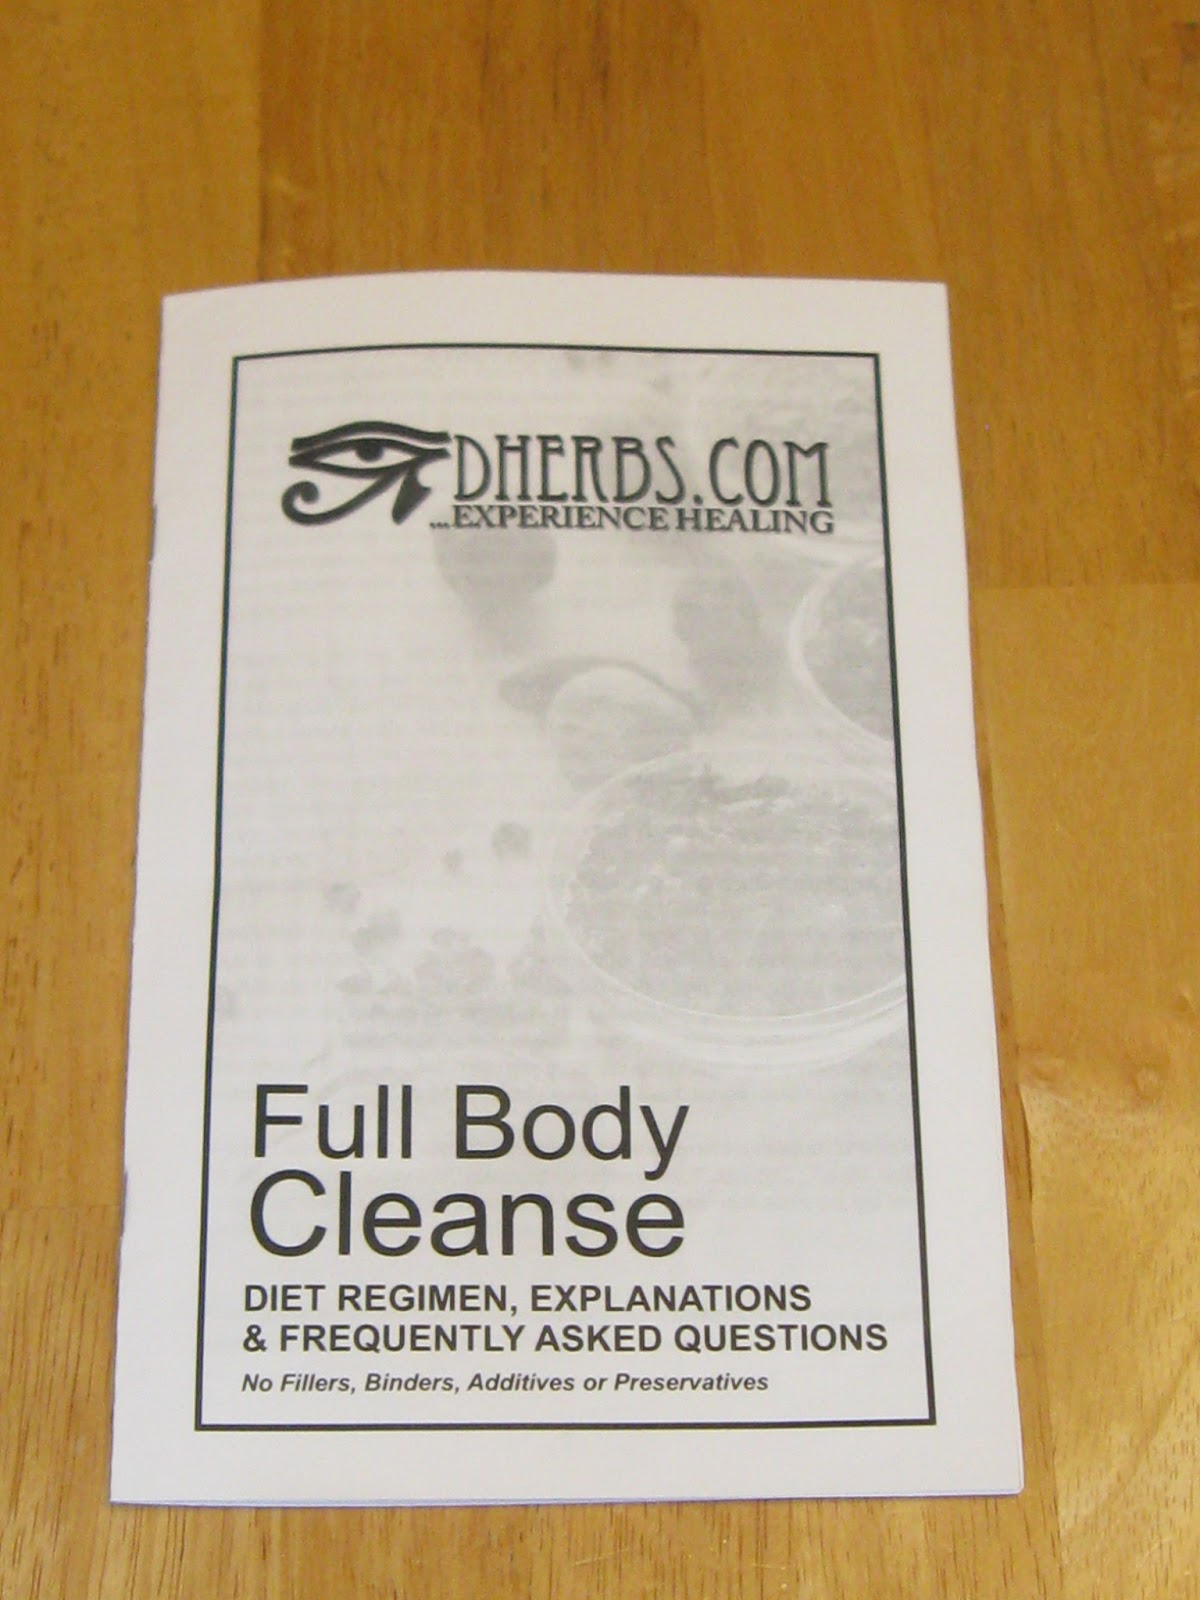 Dherbs full body cleanse directions